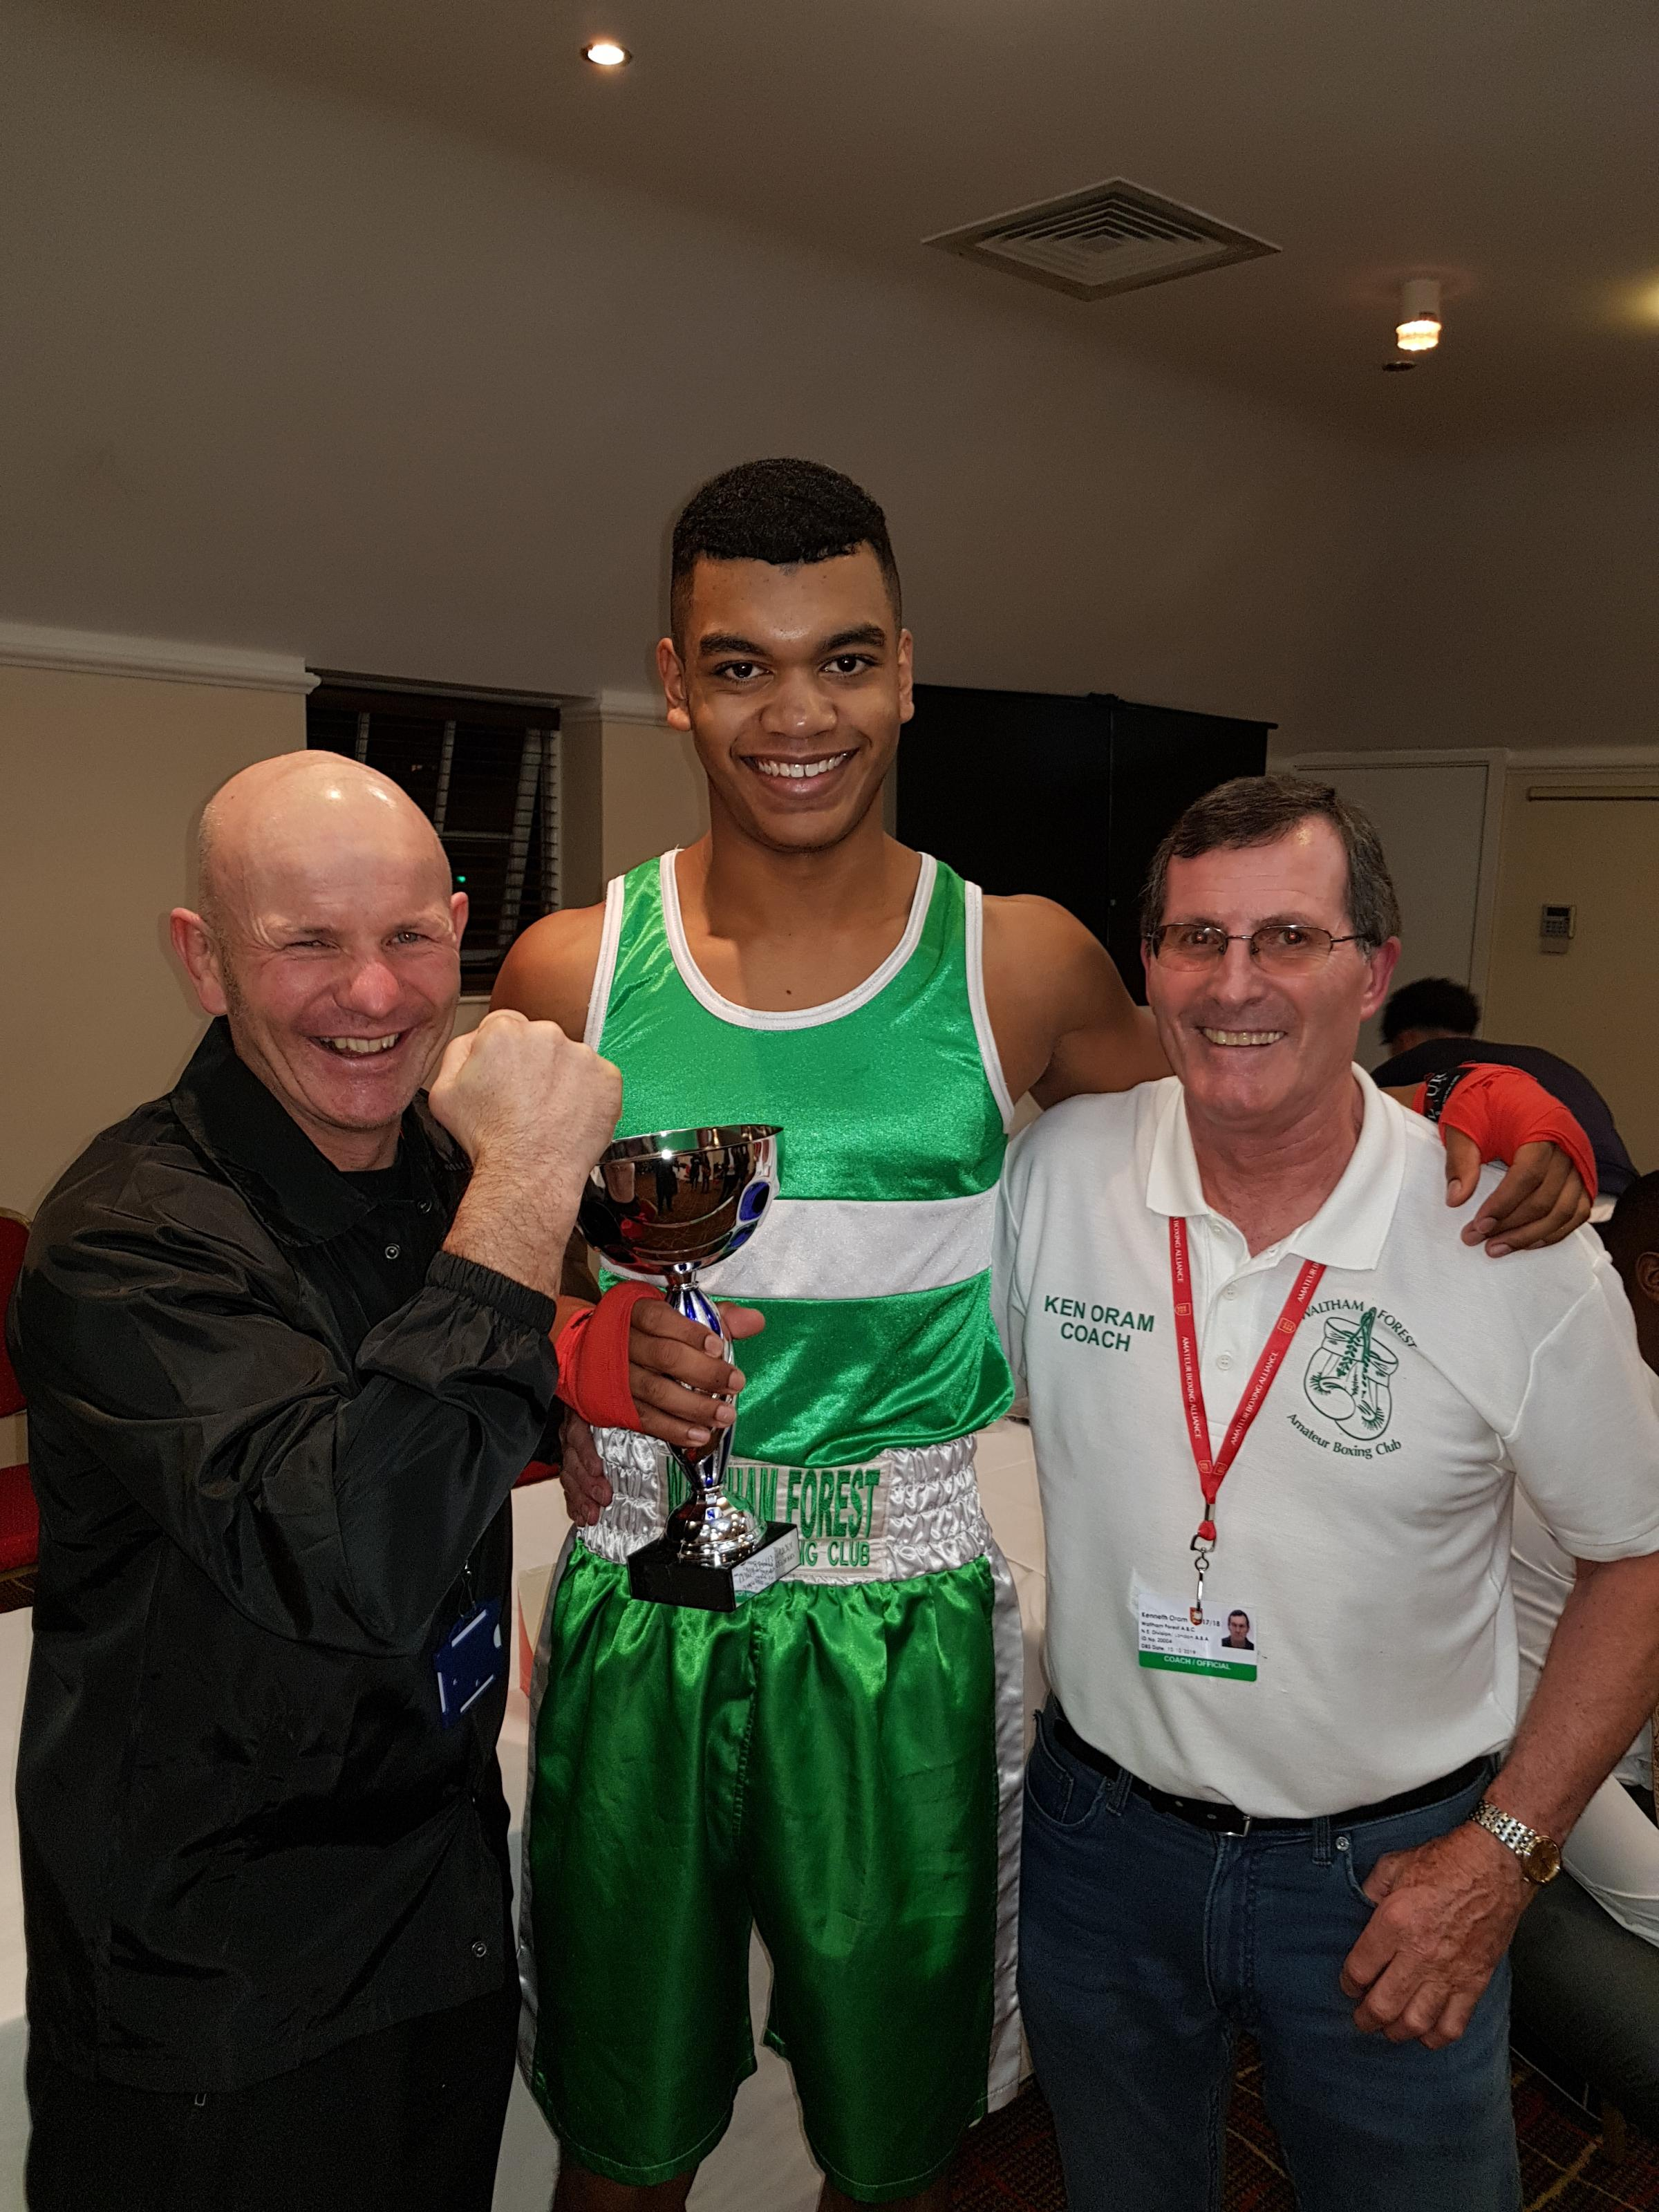 PLEASED-AS-PUNCH: A delighted Cameron Bacchus with coaches Chris Baker (left) and Ken Oram (right).